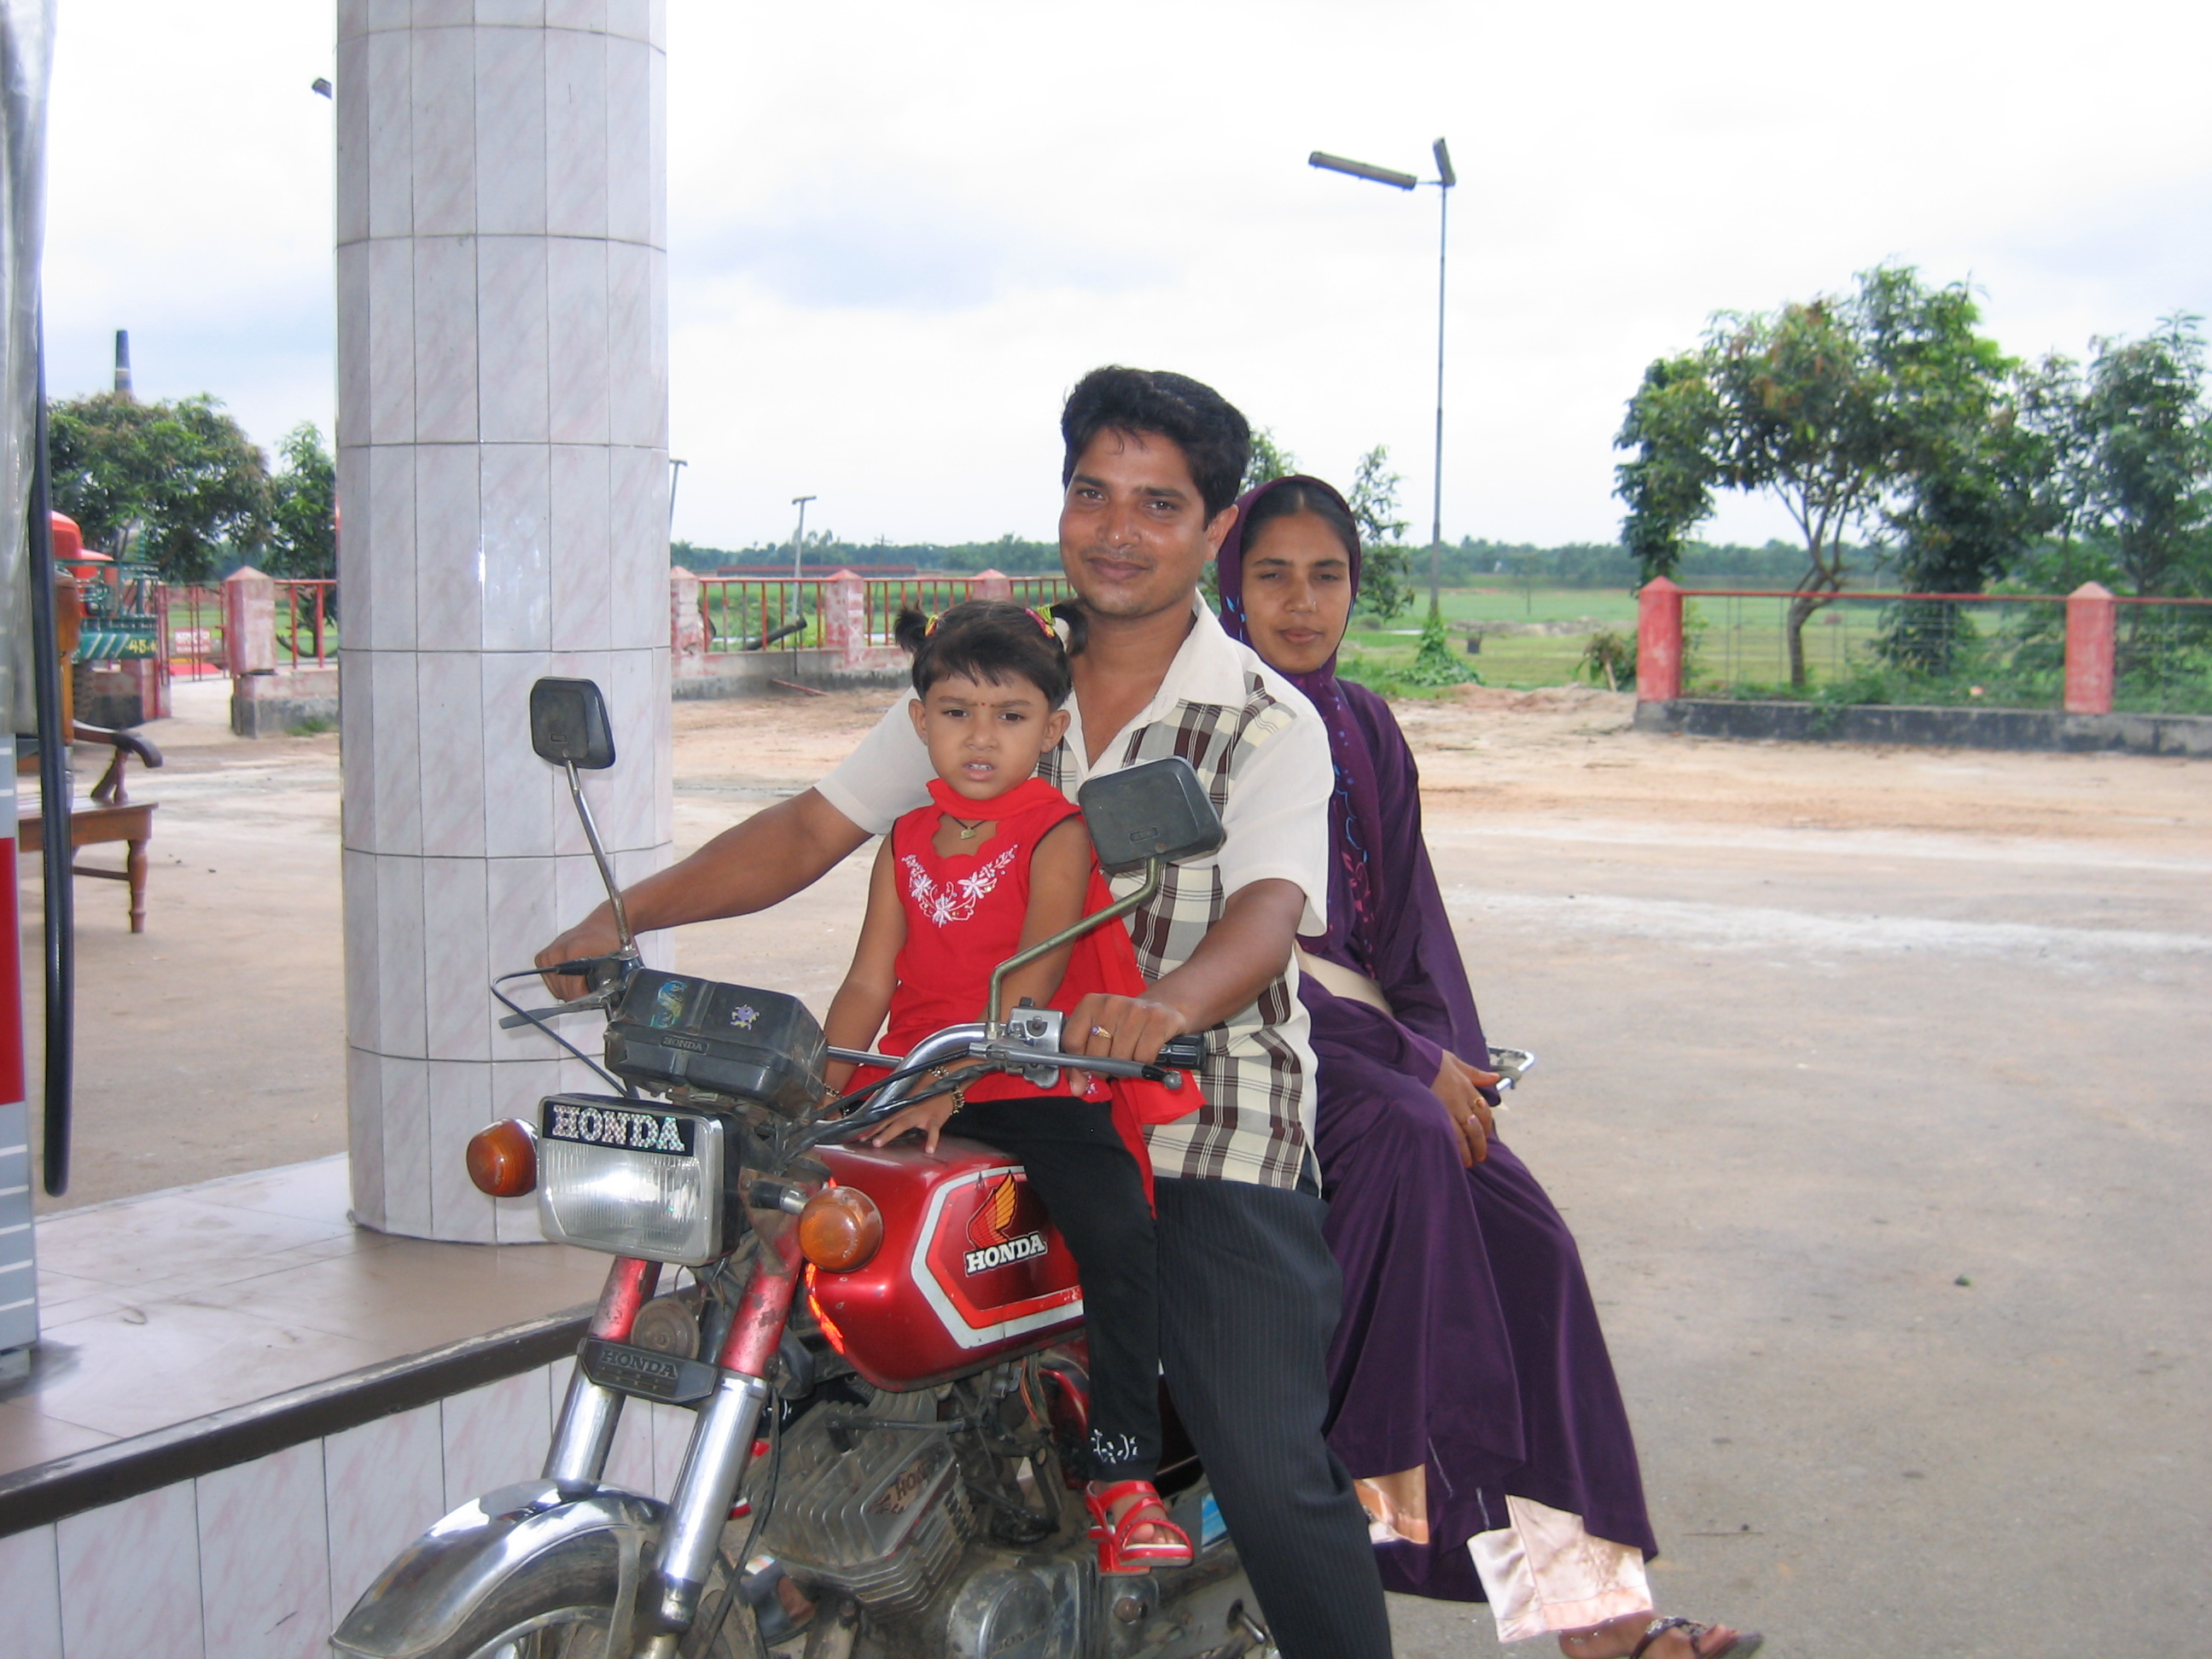 A family of three on a motorcycle